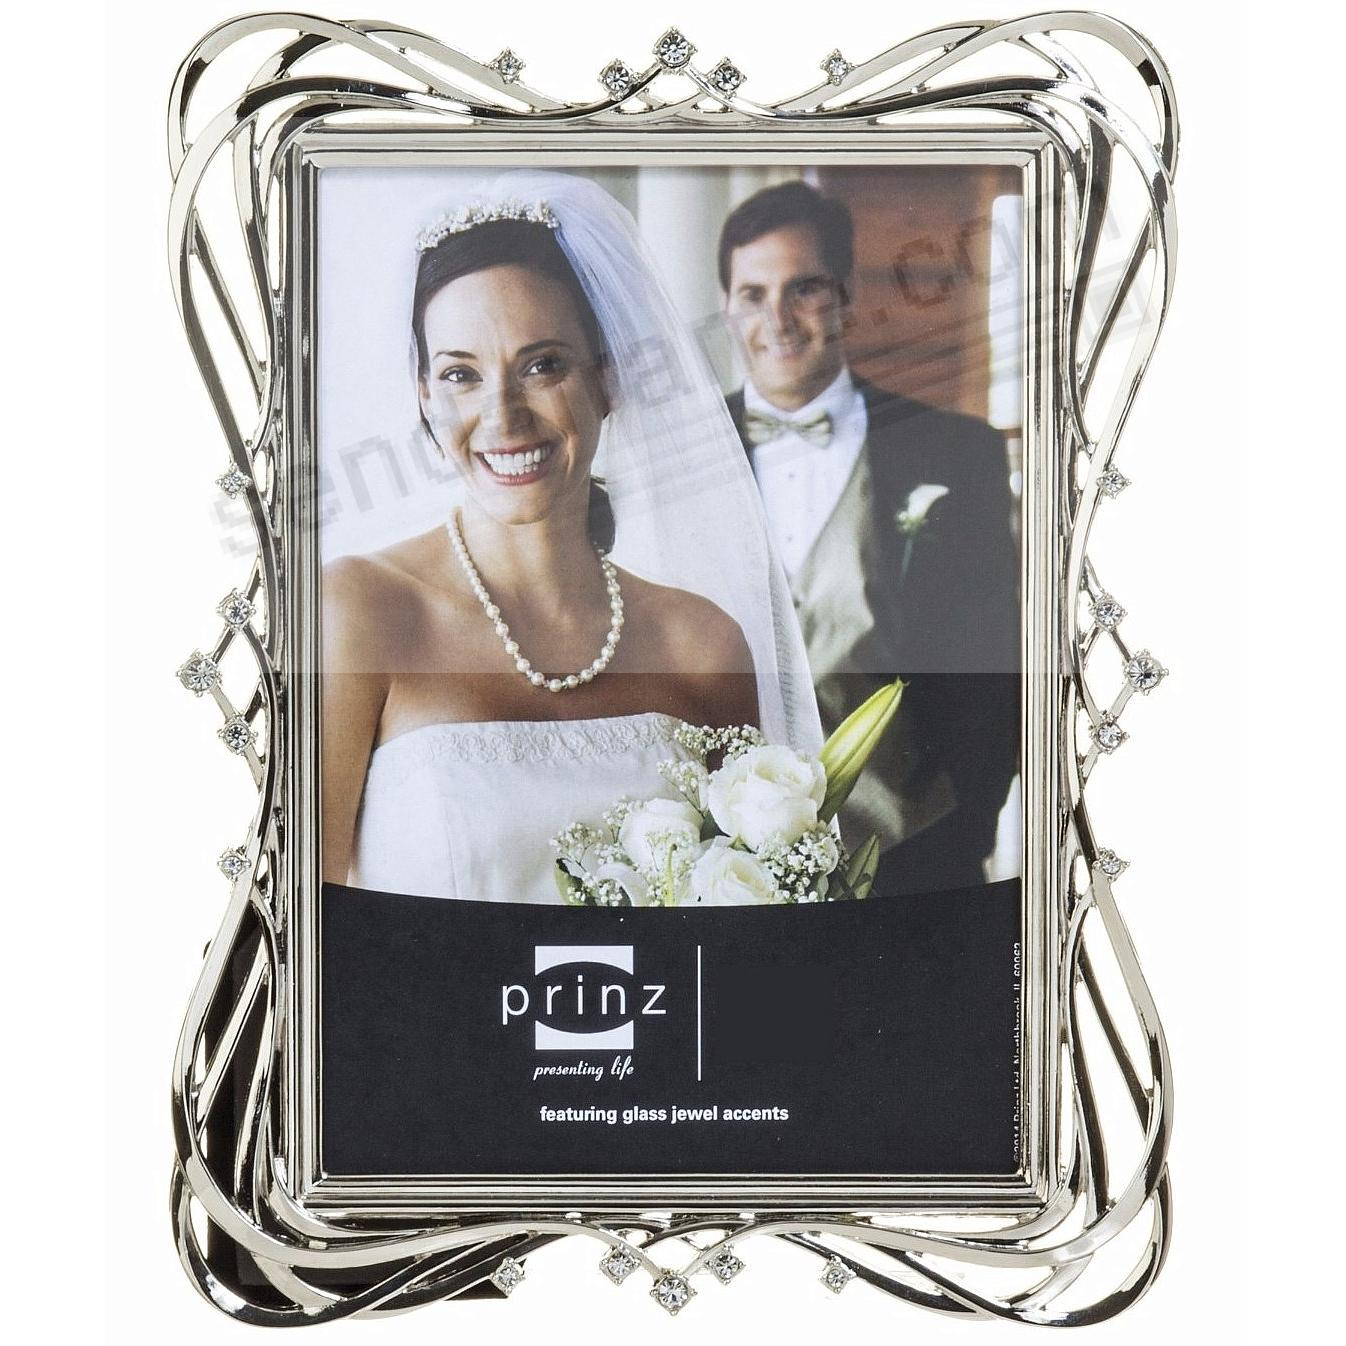 enchanted silver jeweled crystal 5x7 frame by prinz